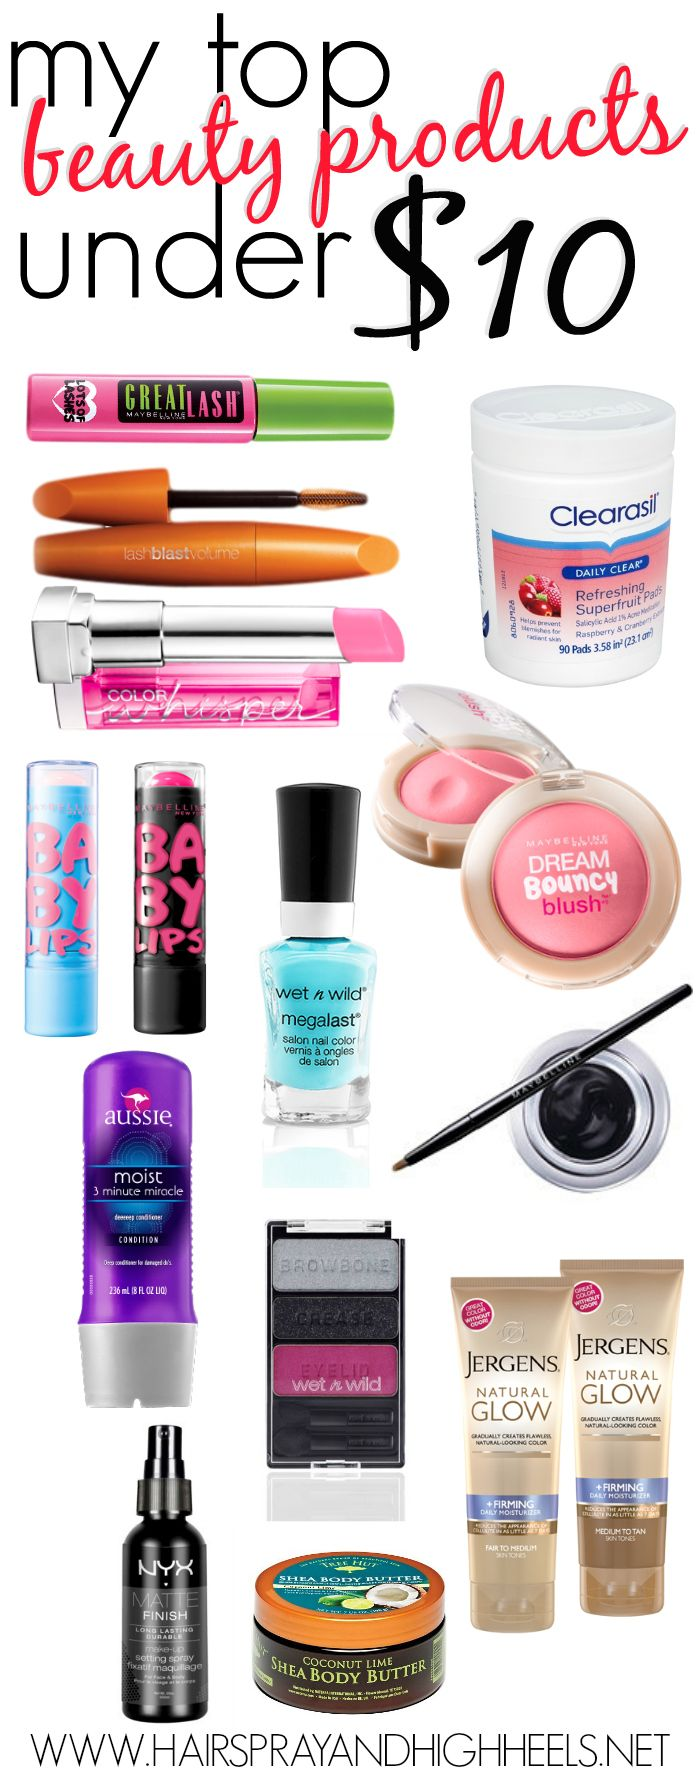 3 new drugstore noteworthy beauty finds recommend dress for on every day in 2019